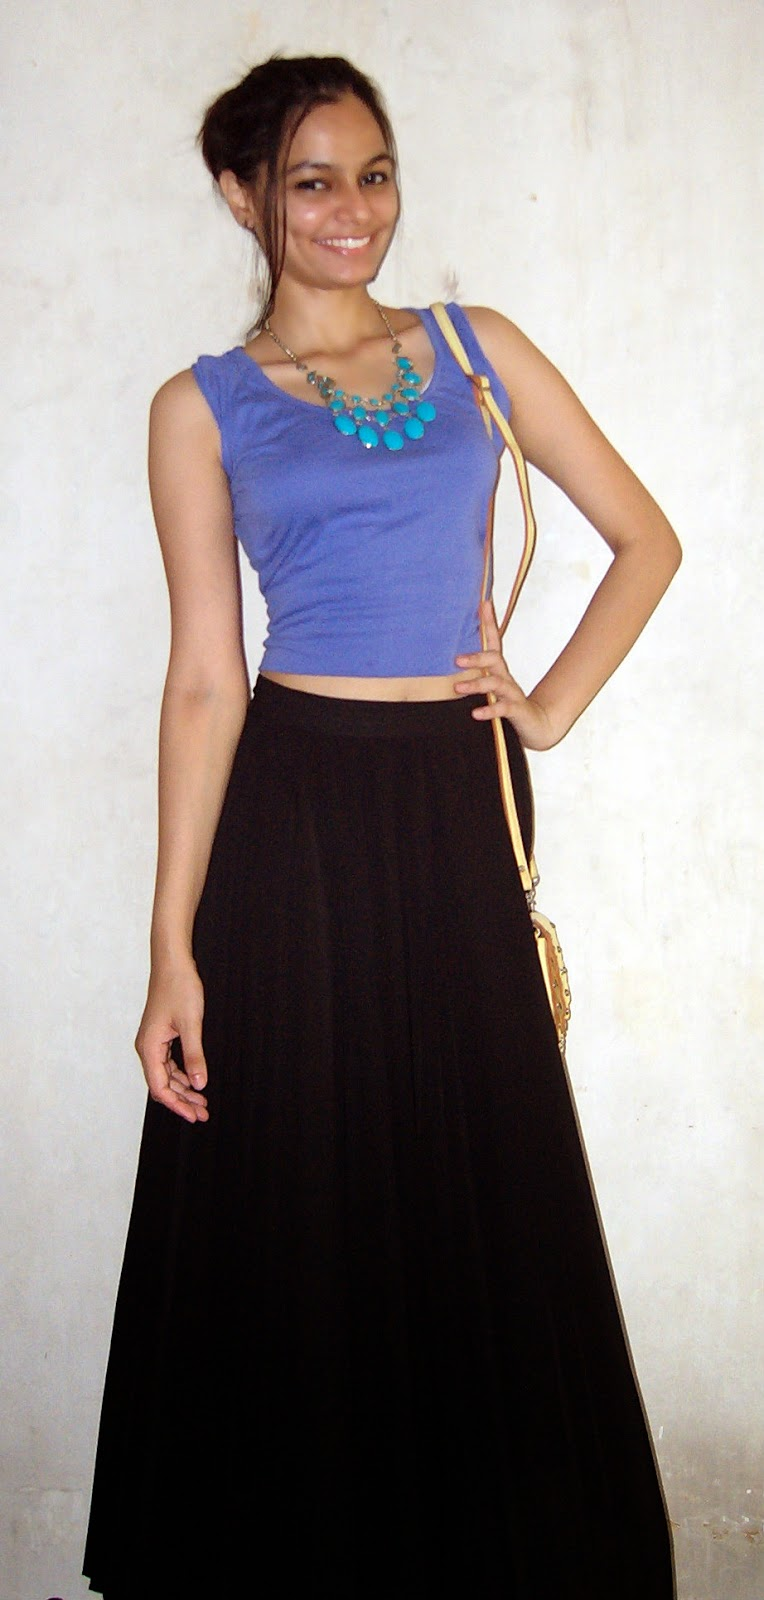 croptop, how to wear a crop top, pleated skirt, pleated maxi skirt, maxi skirt, summer style, indian fashion blogger, mumbai fashion blogger, mumbai streetstyle, summer shopping ideas, look for less